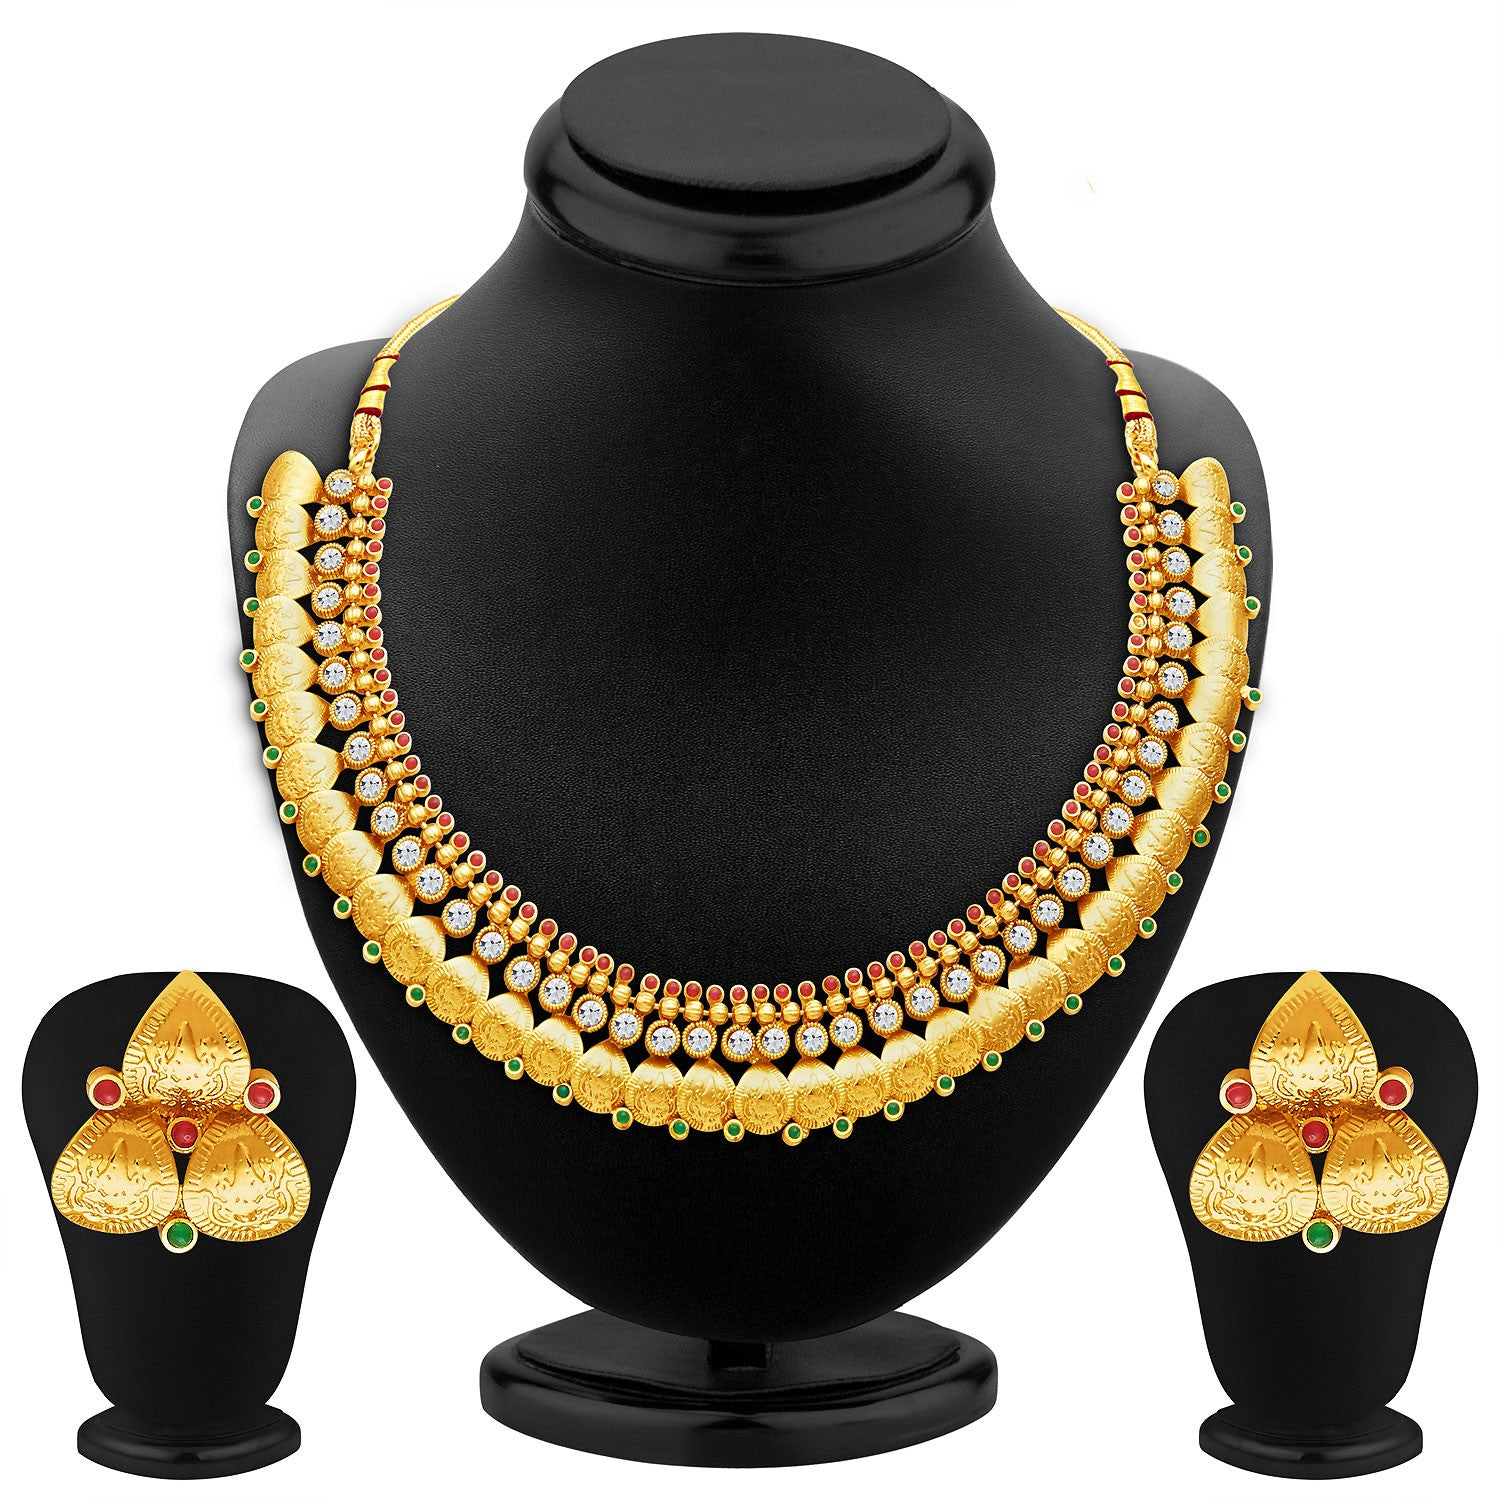 Sukkhi fascinating gold plated temple jewellery necklace set sukkhi fascinating gold plated temple jewellery necklace set aloadofball Choice Image